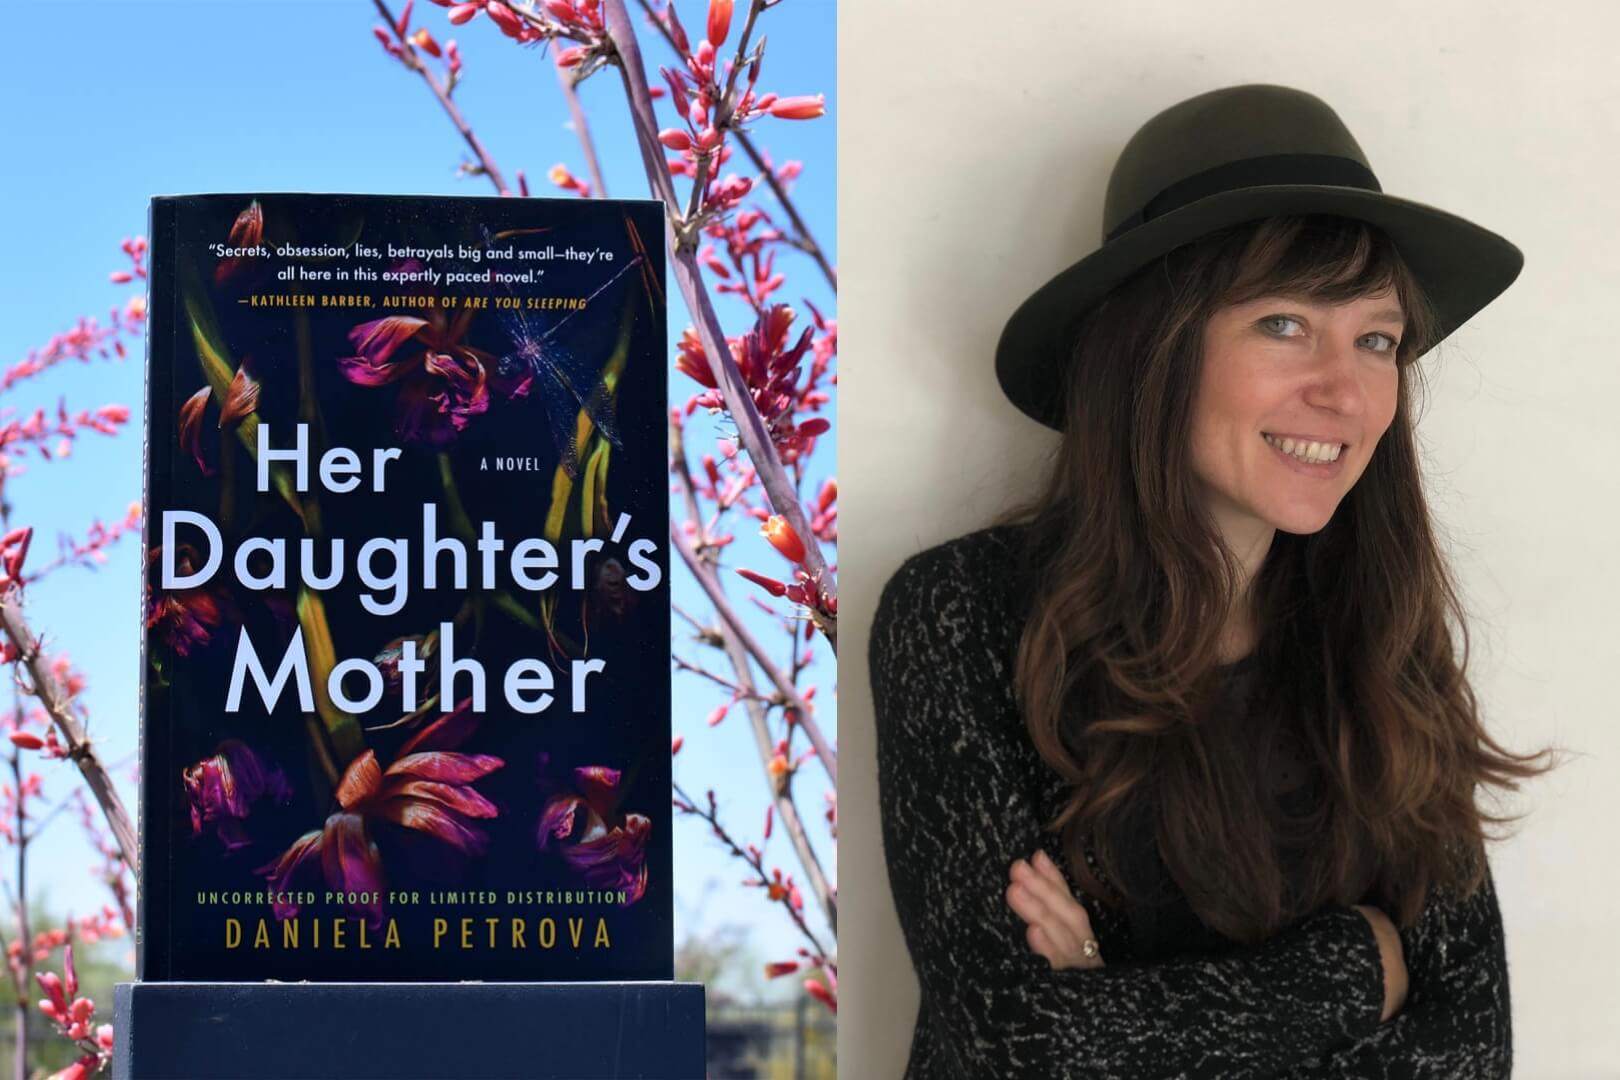 Q&A with author Daniela Petrova discussing her debut novel Her Daughter's Mother